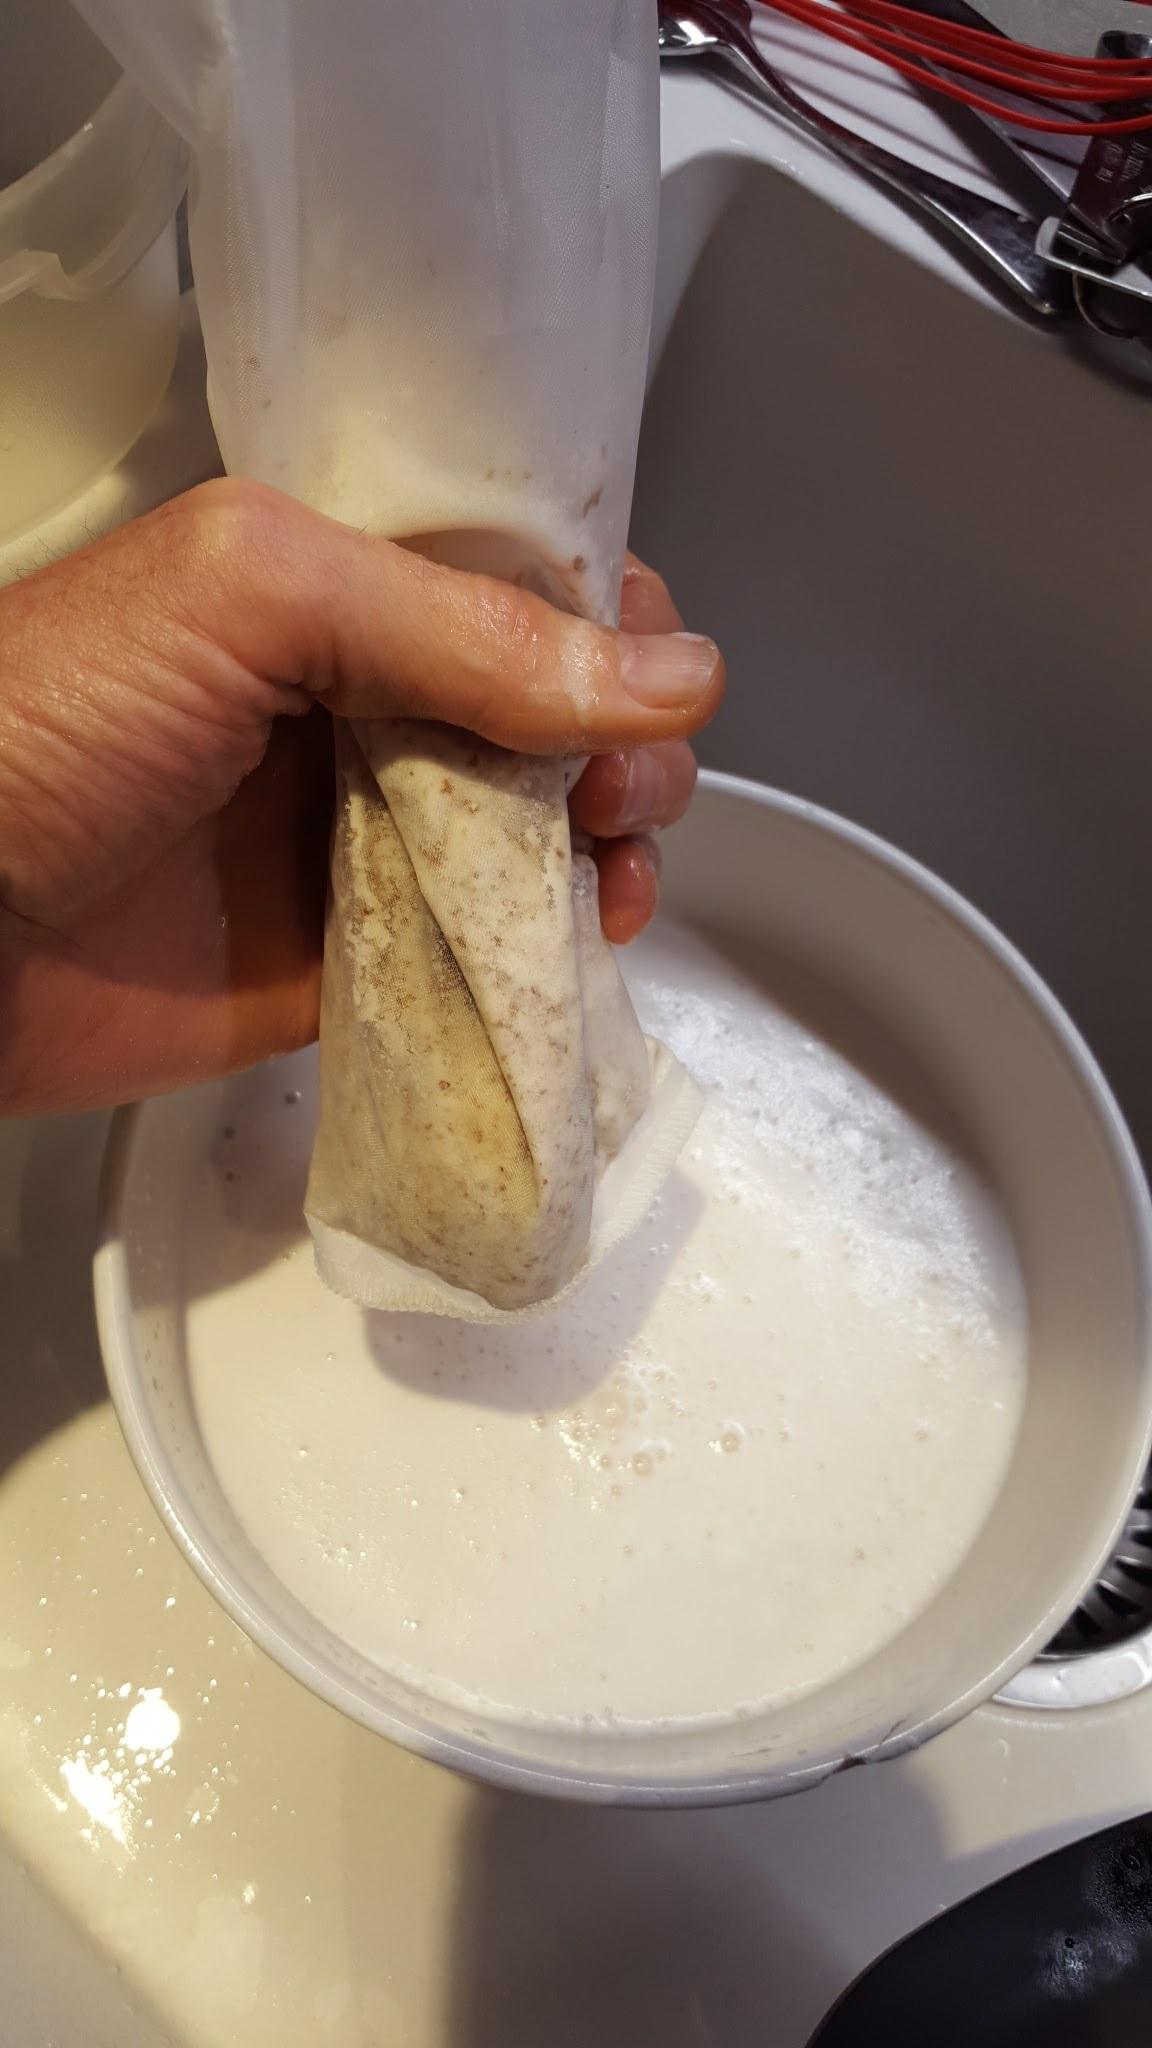 Squeeze the remaining almond milk out of the nut milk bag.